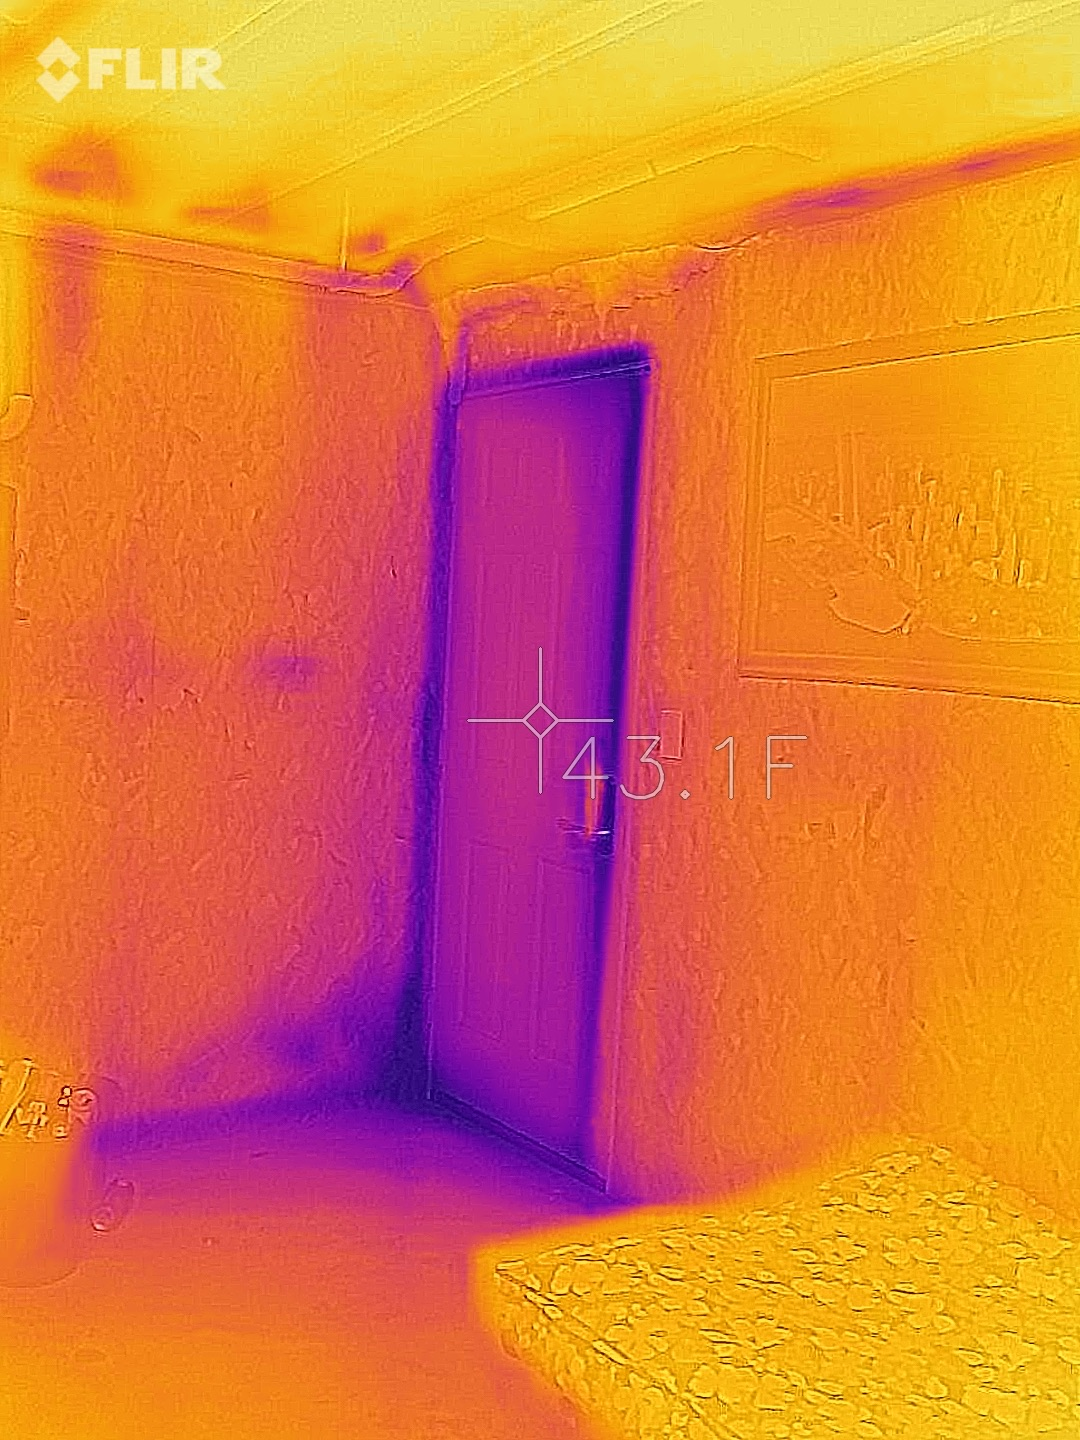 Infrared Doorway